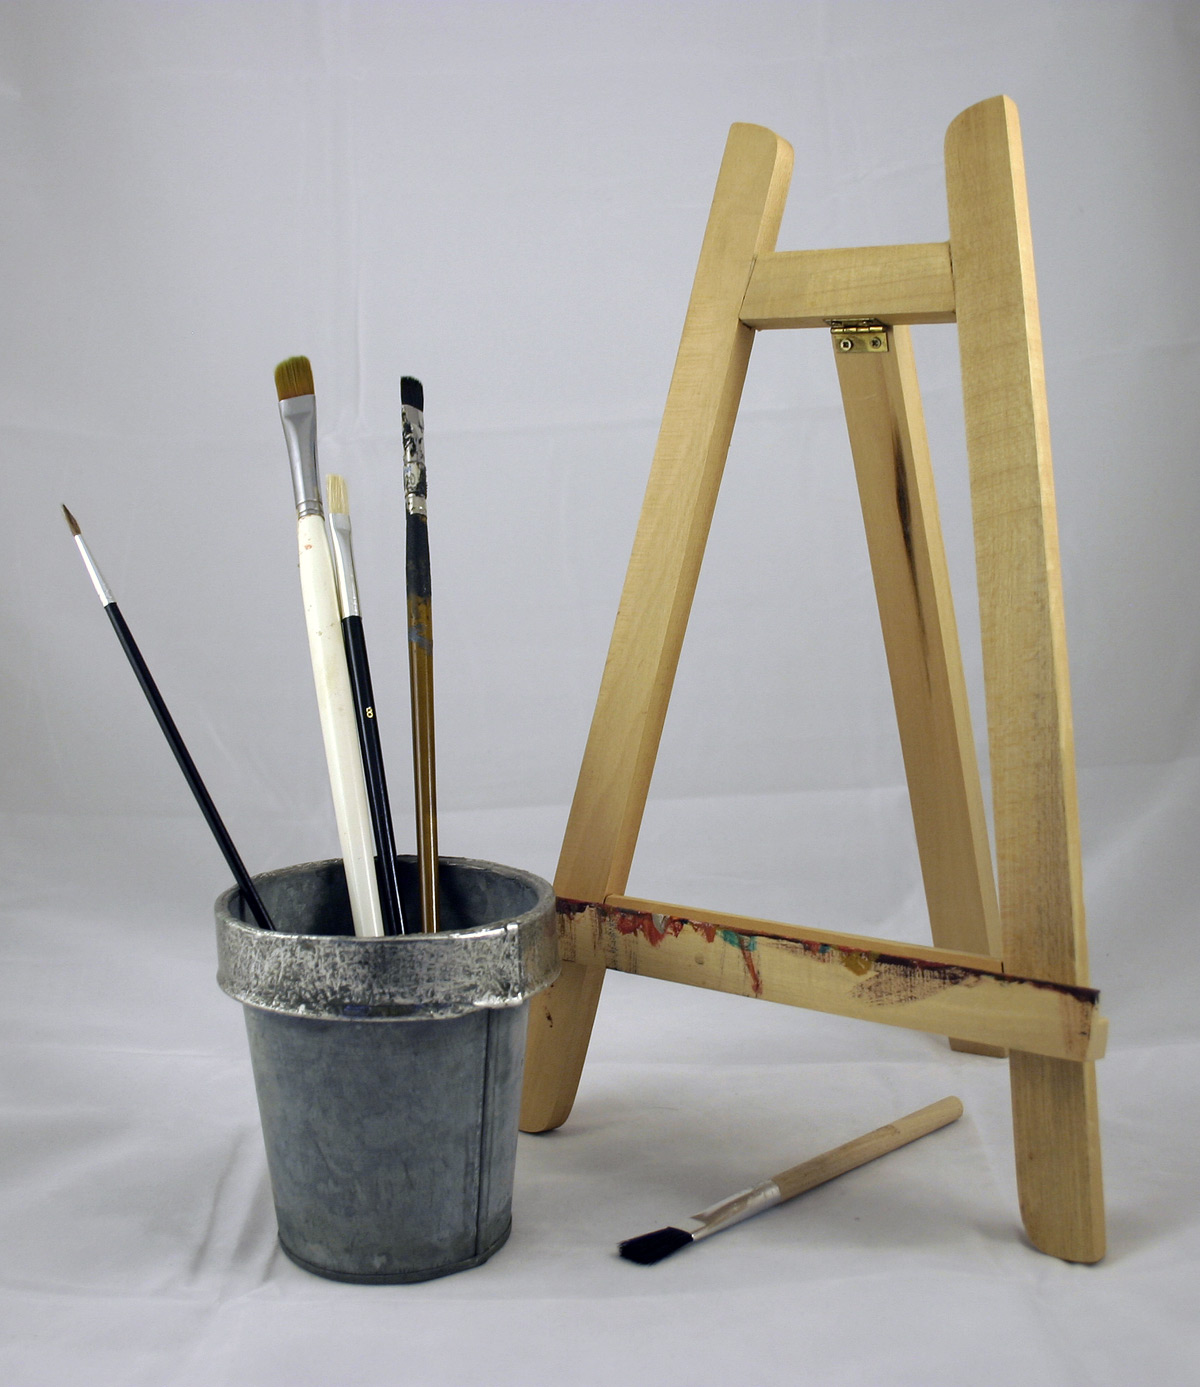 Painting set, Art, Brush, Craft, Display, HQ Photo